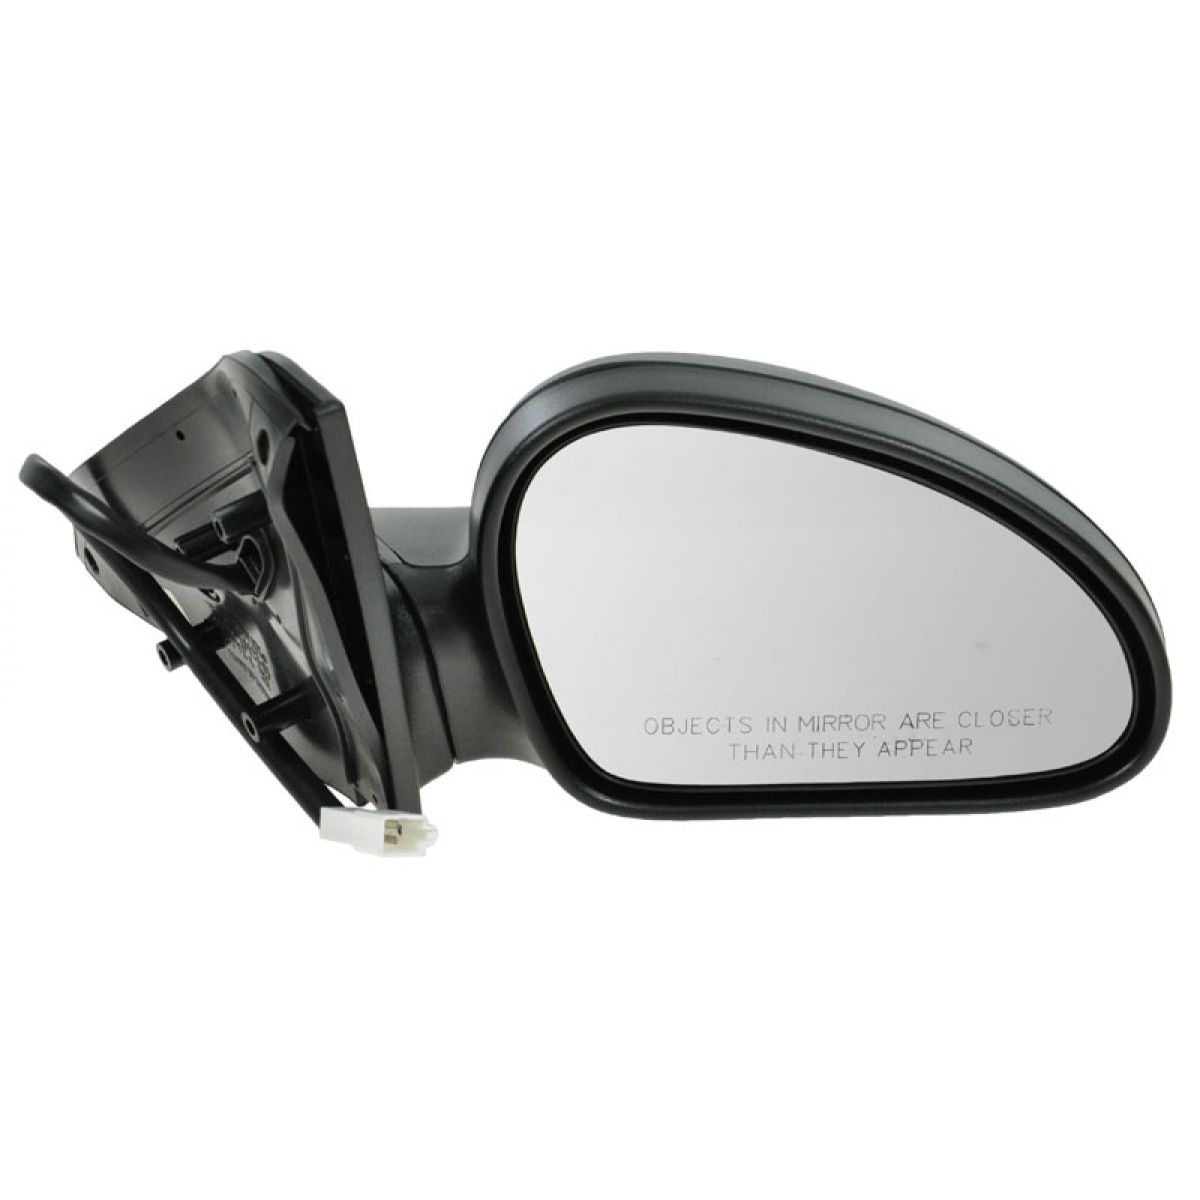 97-02 Ford Escort Driver Side Mirror Replacement